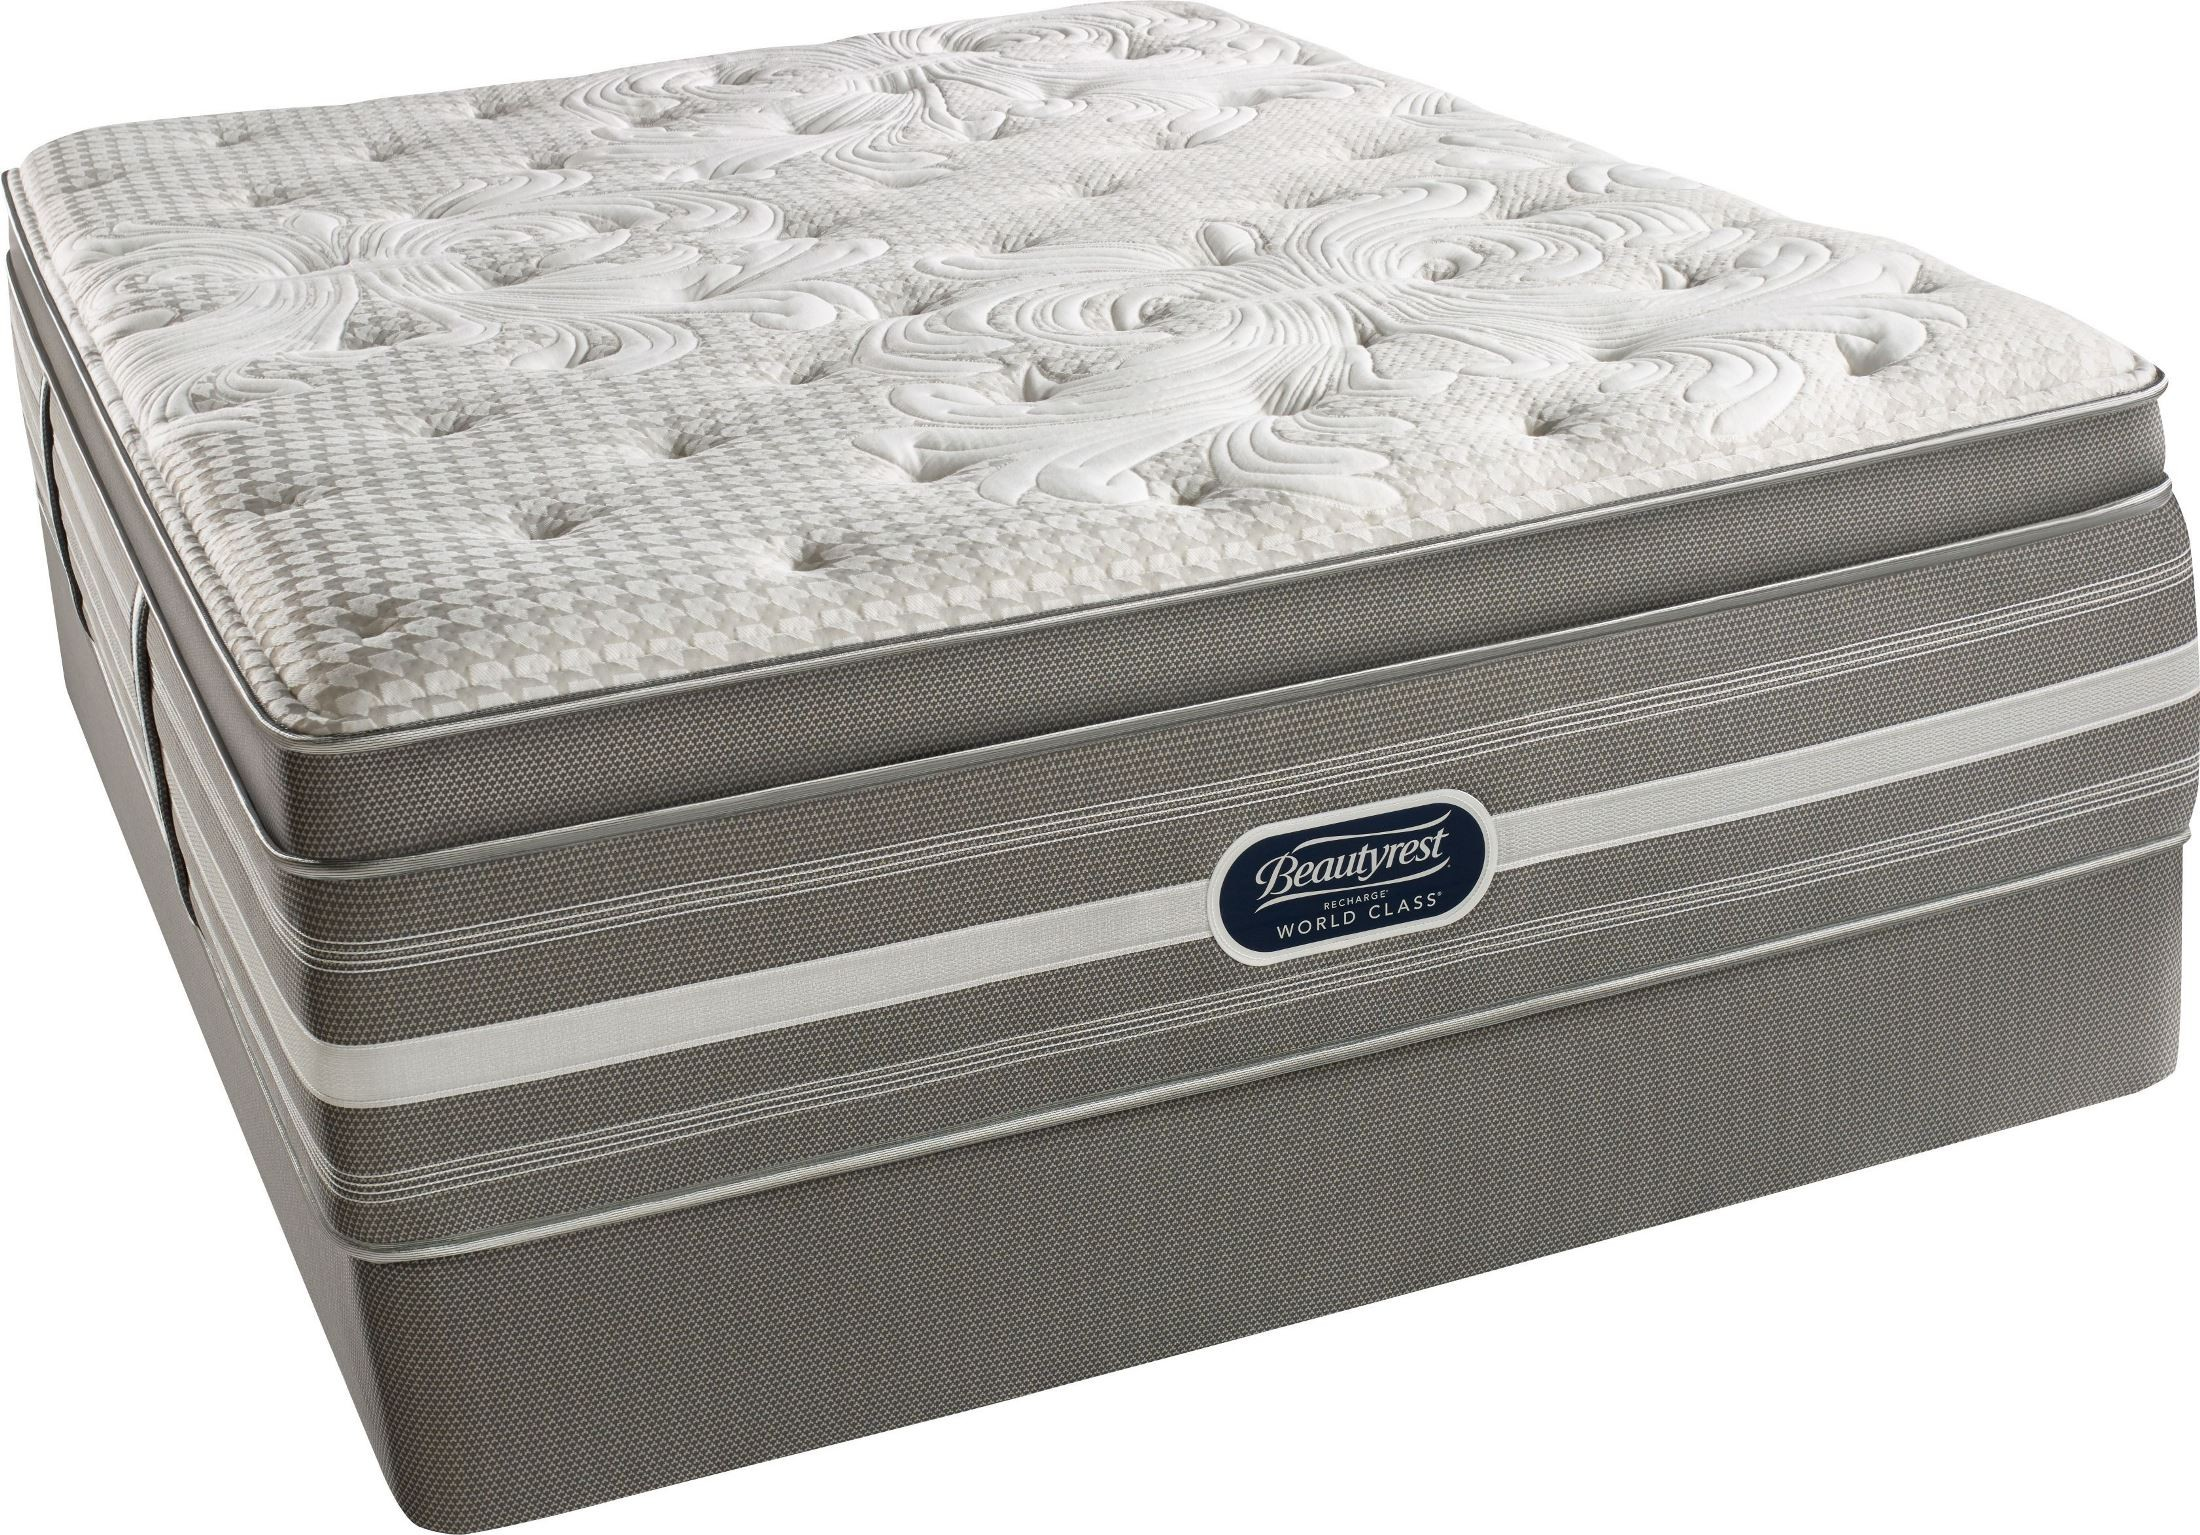 Recharge Chasewood King Pillow Top Luxury Firm Mattress Recharge Chasewood Pillow Top Luxury